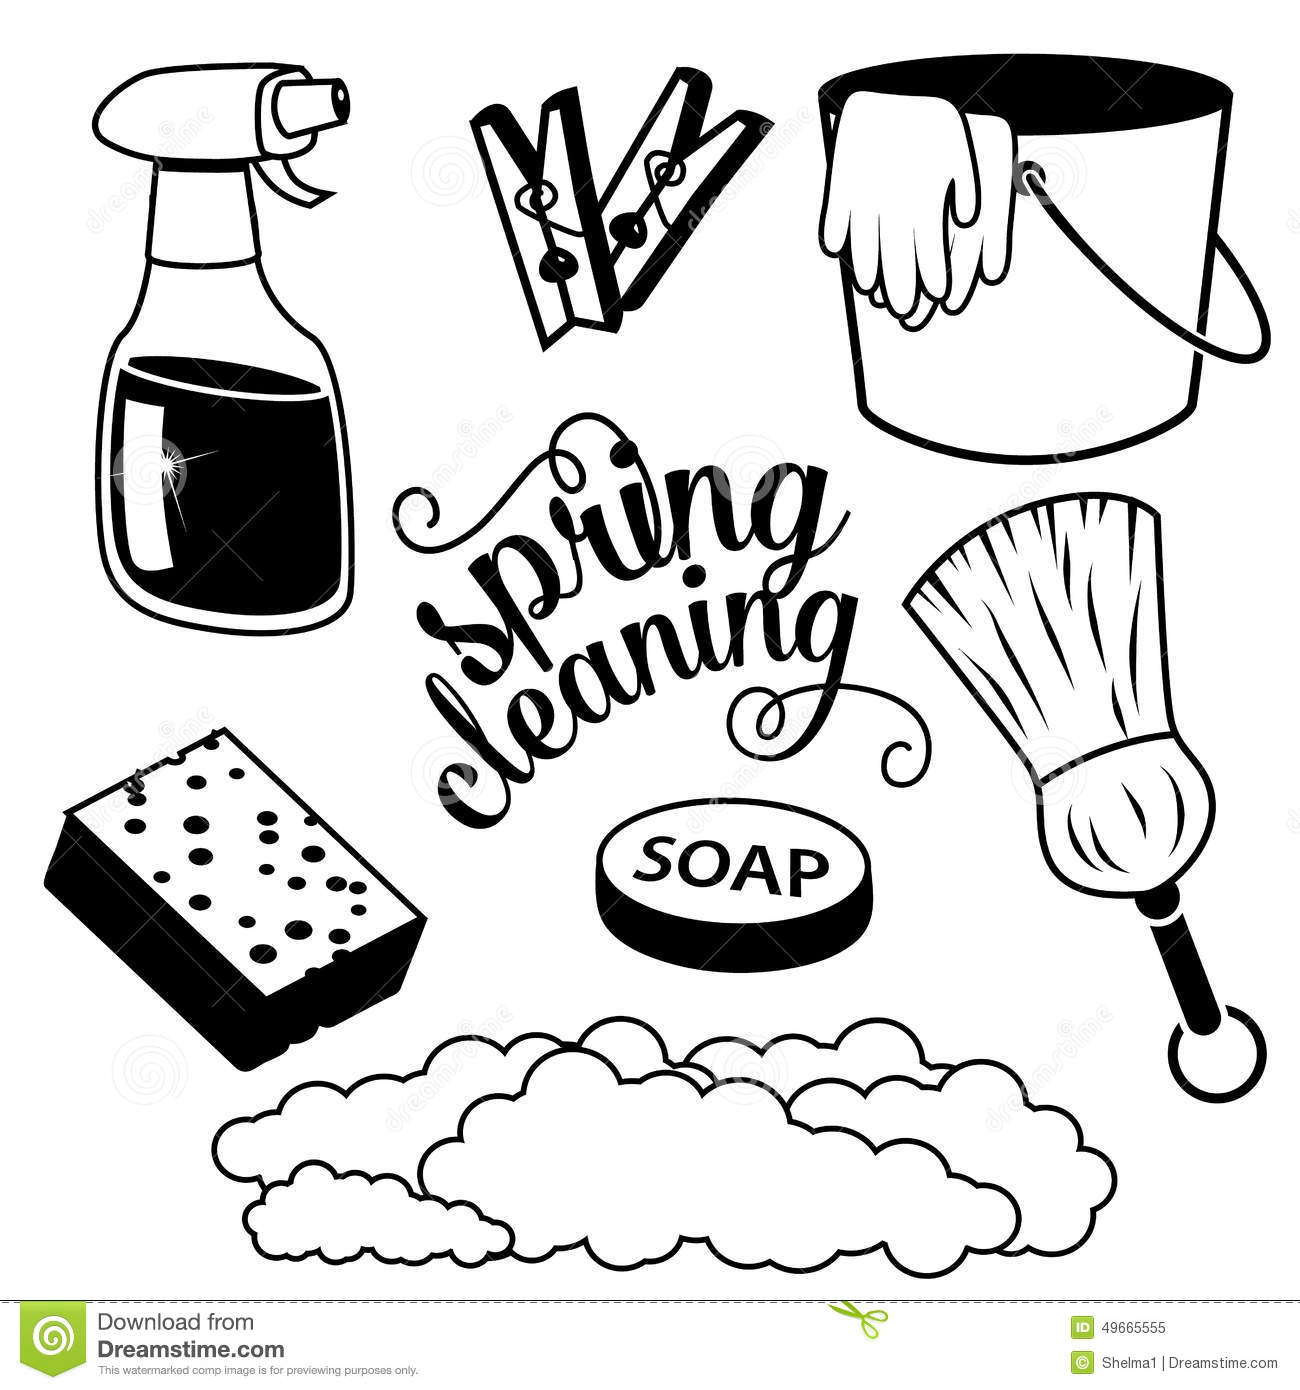 Cleaning Supplies Clipart Black And White How To Format